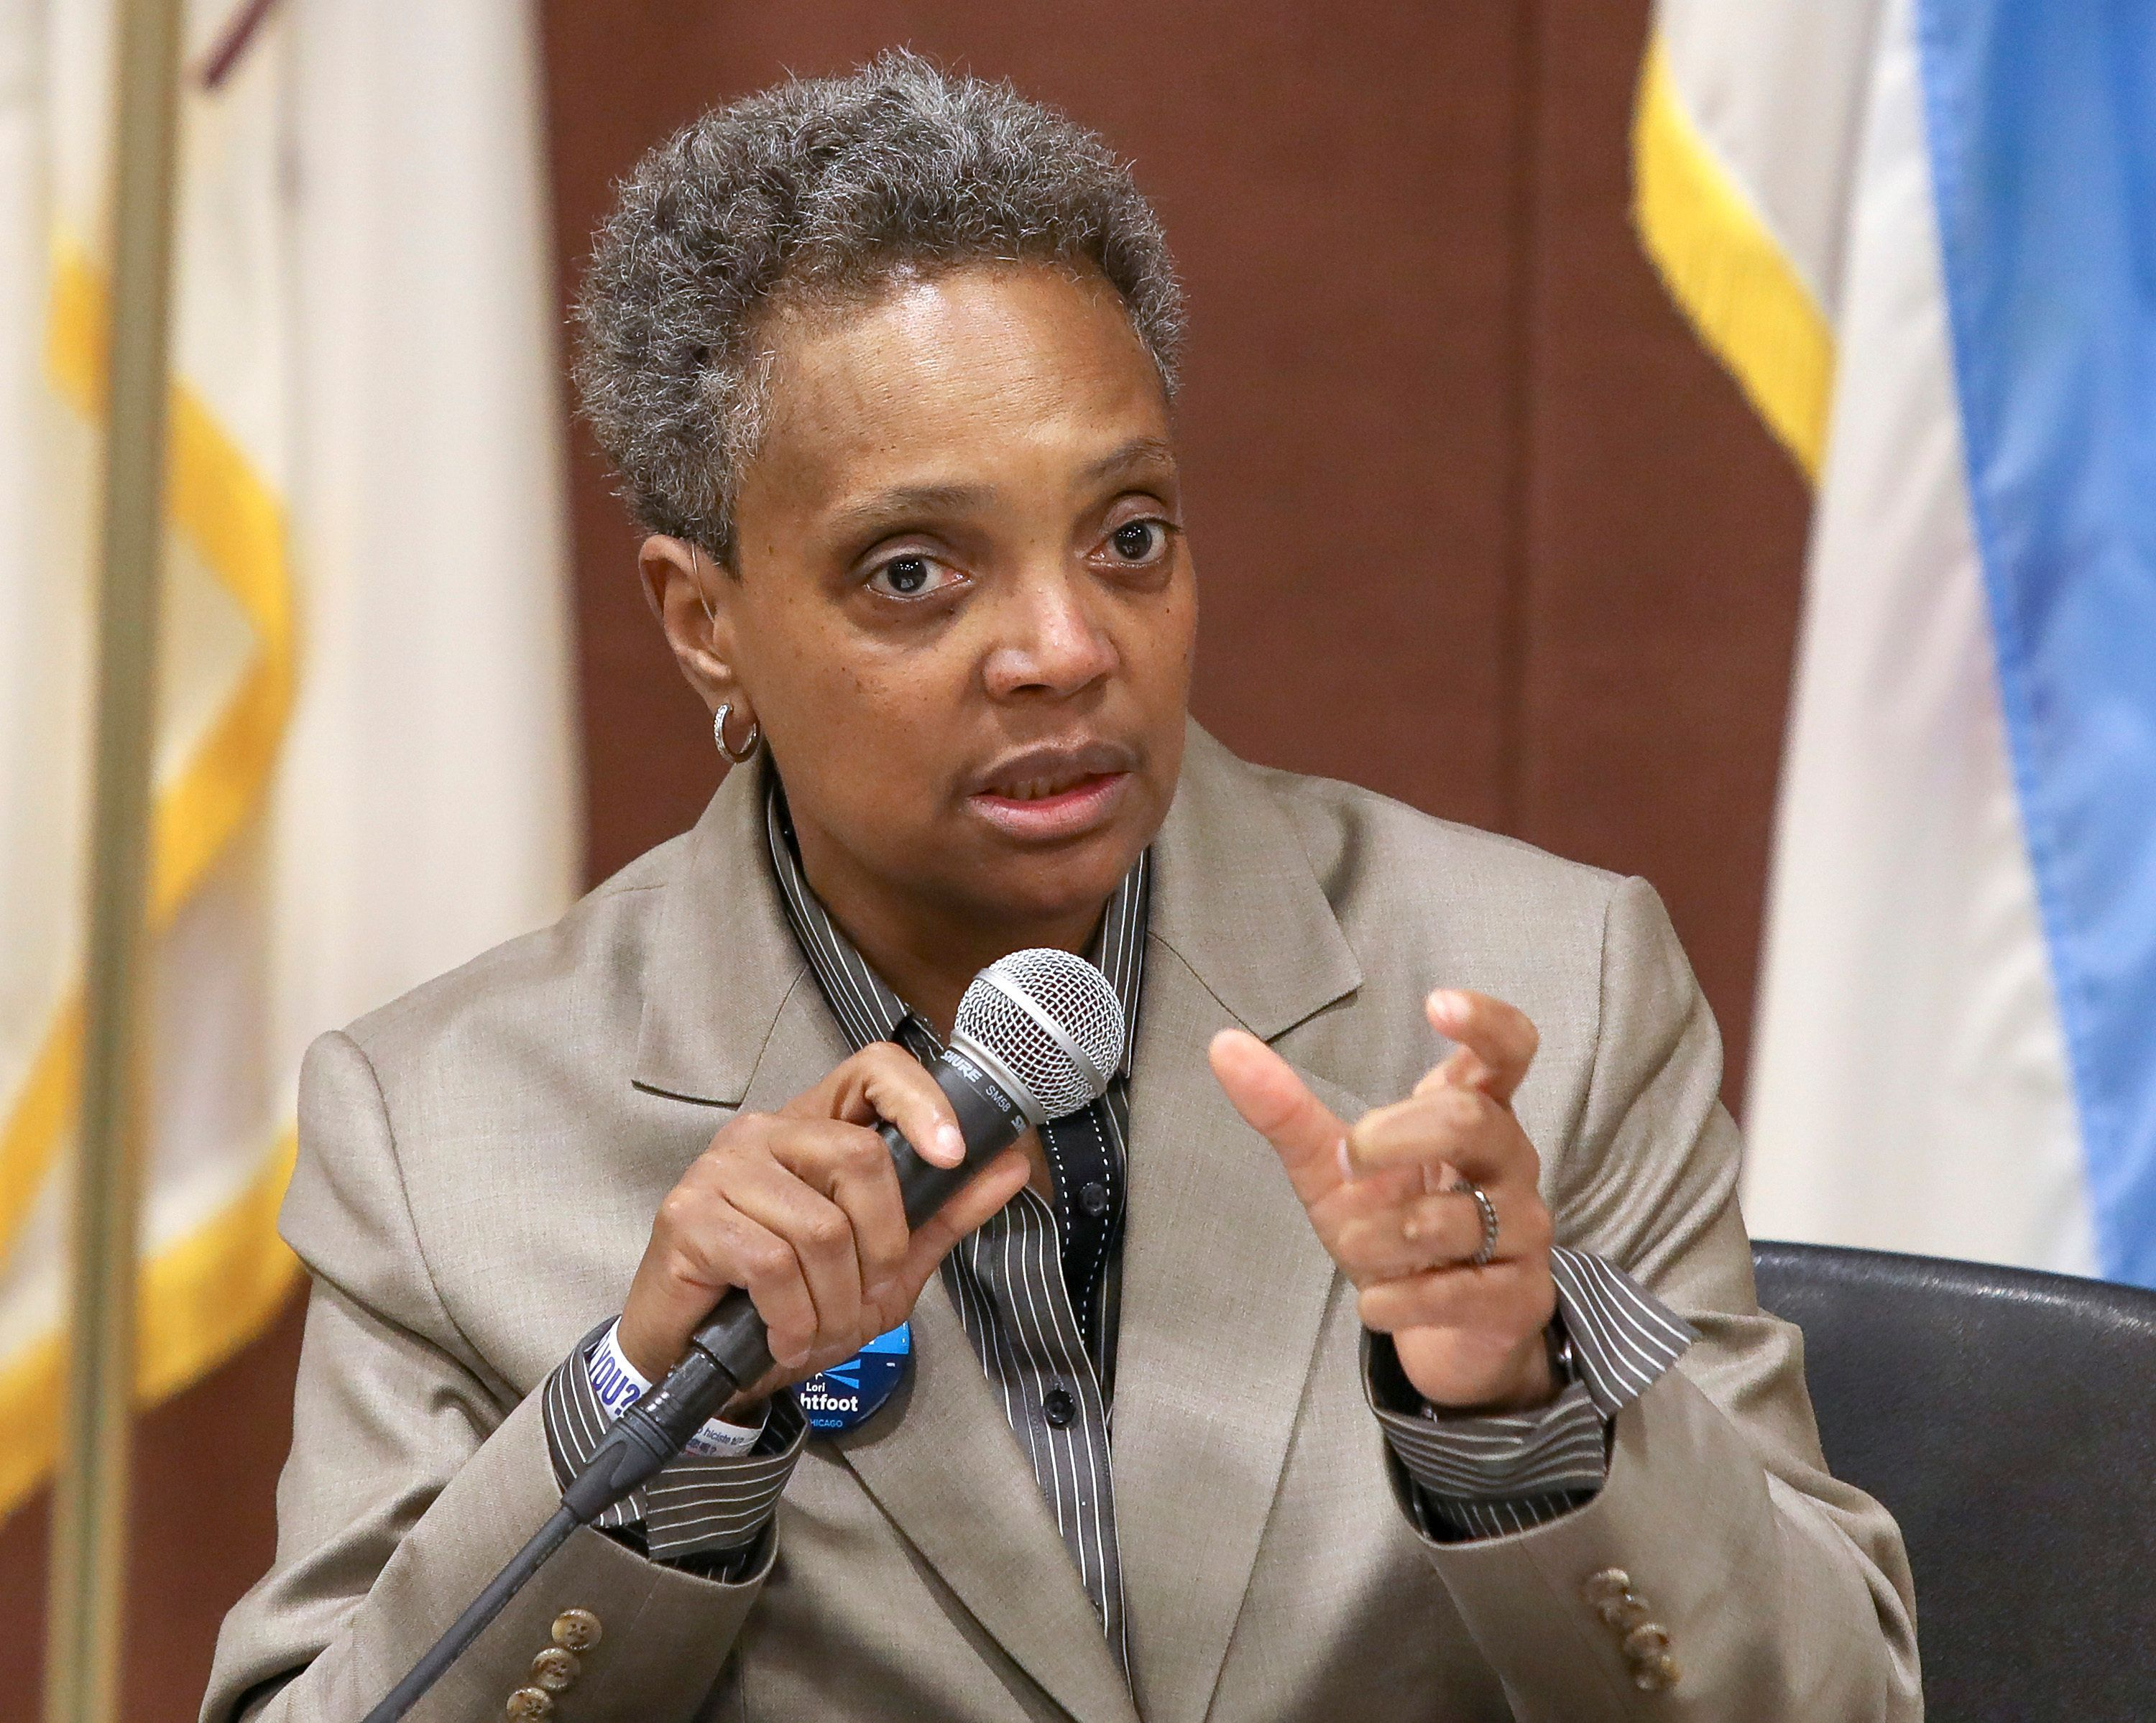 In this March 24, 2019 photo, Chicago mayoral candidate Lori Lightfoot participates in a candidate forum sponsored by One Chicago For All Alliance at Daley College in Chicago. Lightfoot and Toni Preckwinkle, left, are competing to make history by becoming the city's first black, female mayor. On issues their positions are similar. But their resumes are not, and that may make all the difference when voters pick a new mayor on Tuesday. (AP Photo/Teresa Crawford)